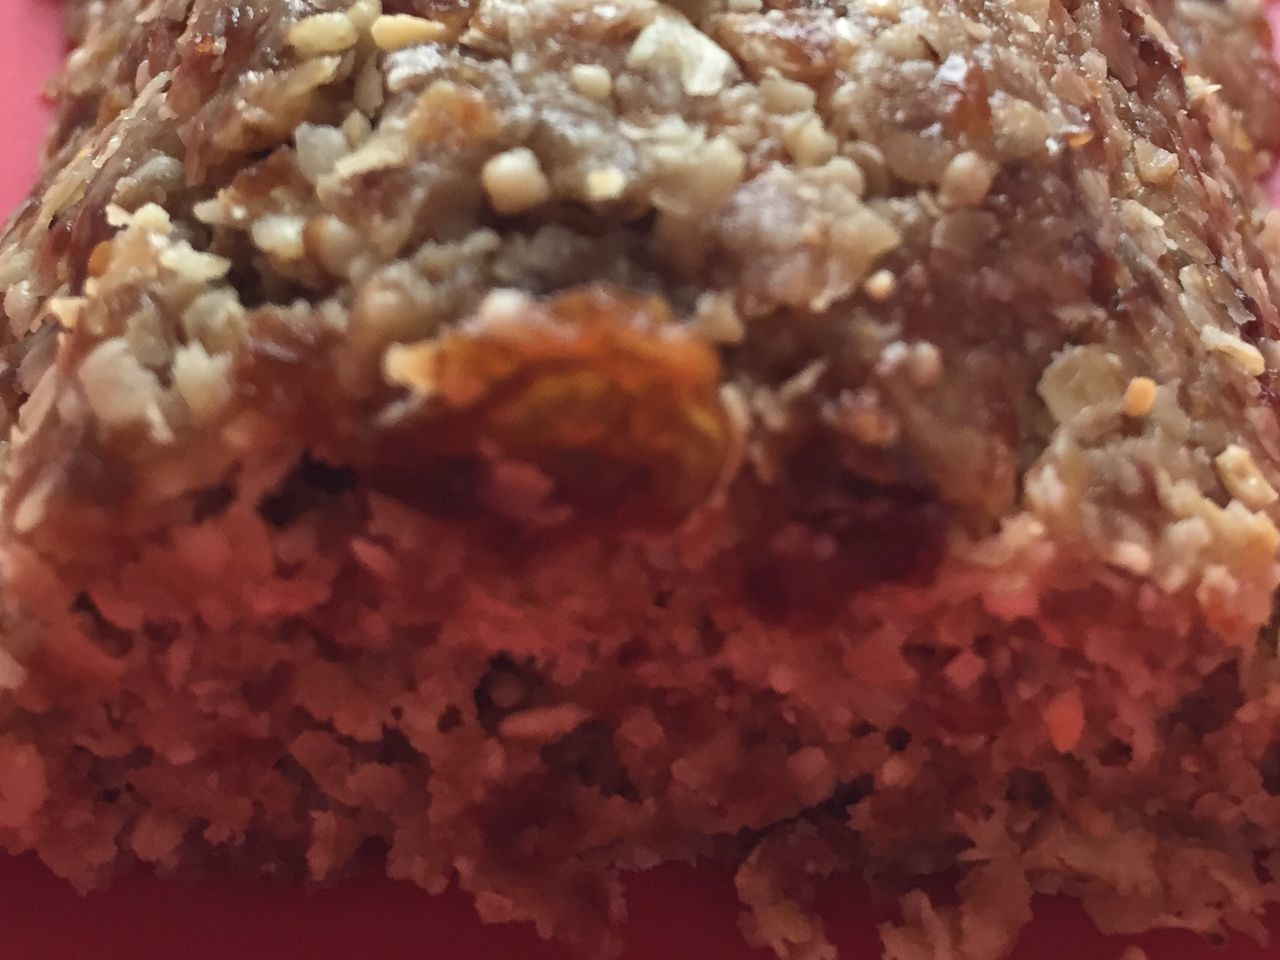 Homemade muesli bar Oats Raisins Cashewnuts Homemade Fitness Delicious Gay Food Germaninlondon Foodporn